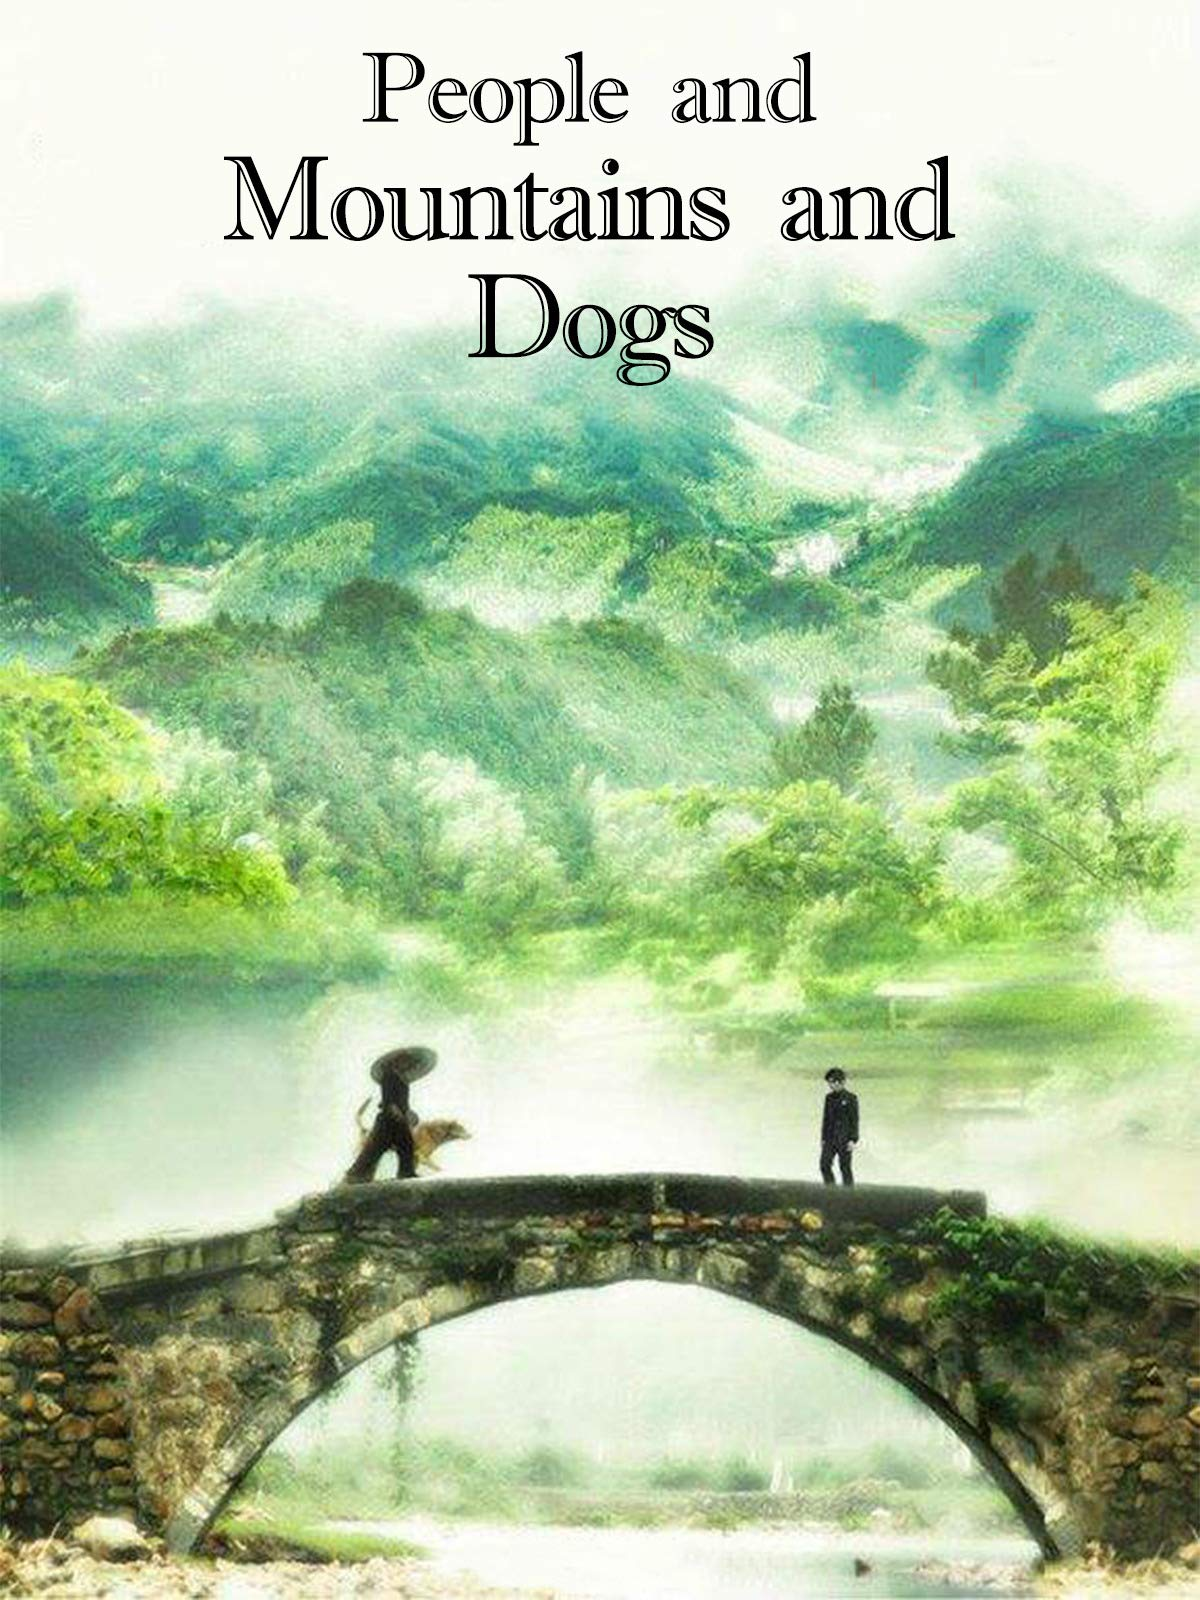 People And Mountains And Dogs on Amazon Prime Video UK